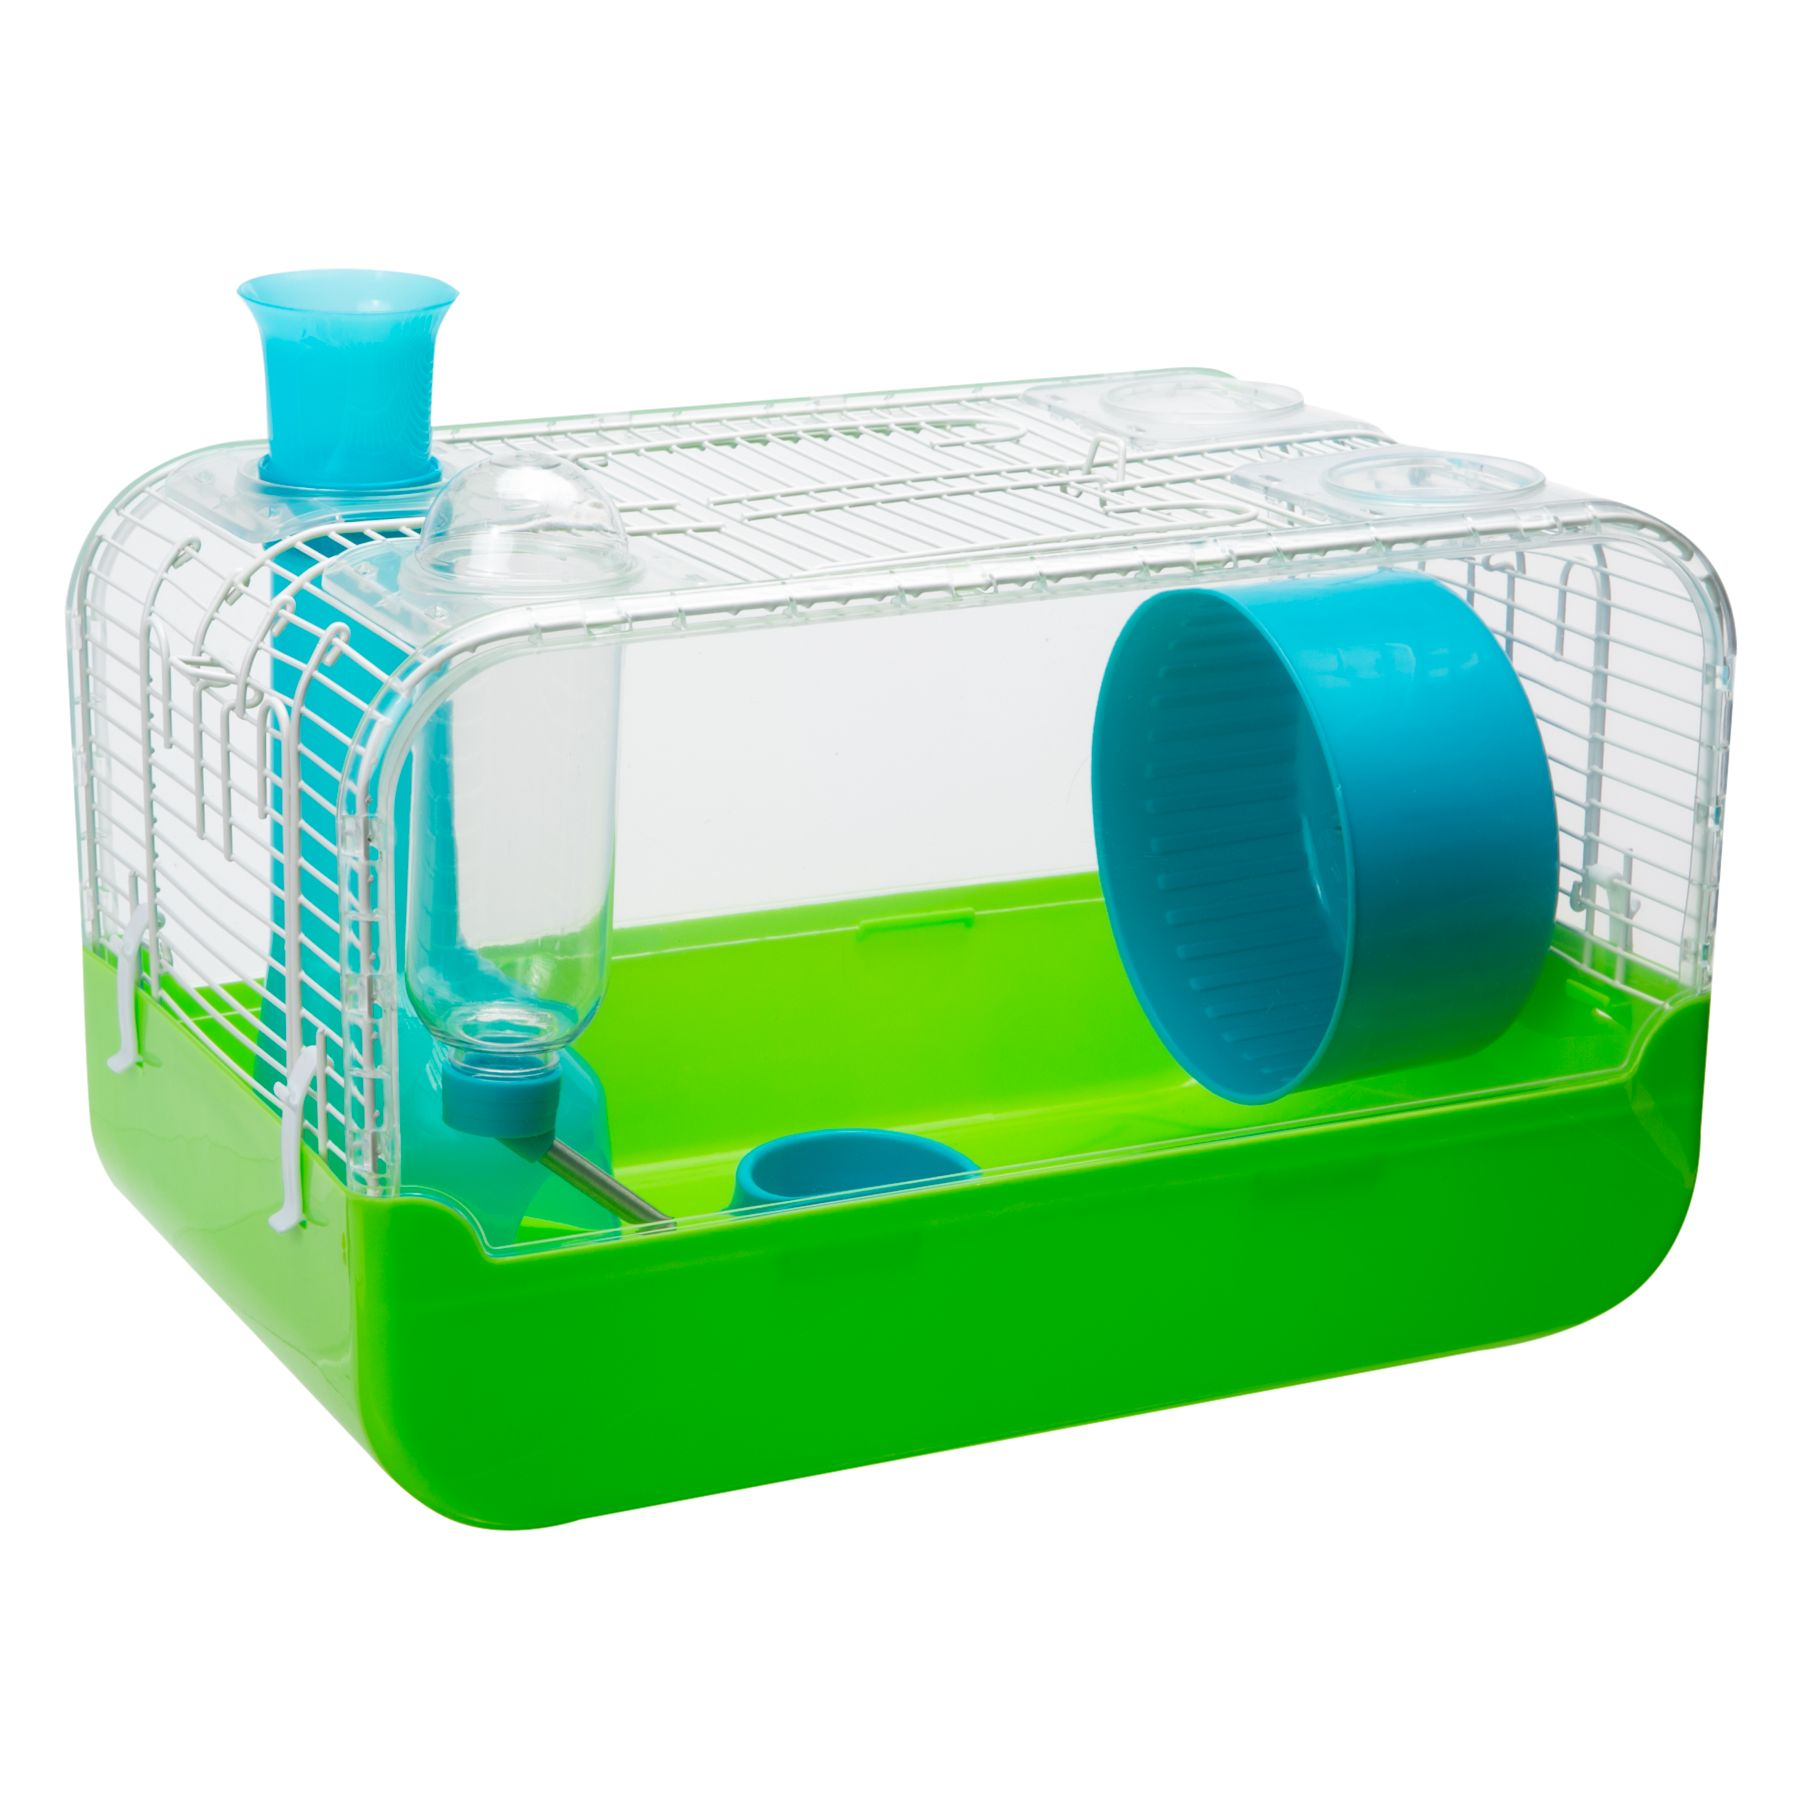 National Geographic, Peek and Play Modular Small Pet Start-Up Kit size: Small 5238223